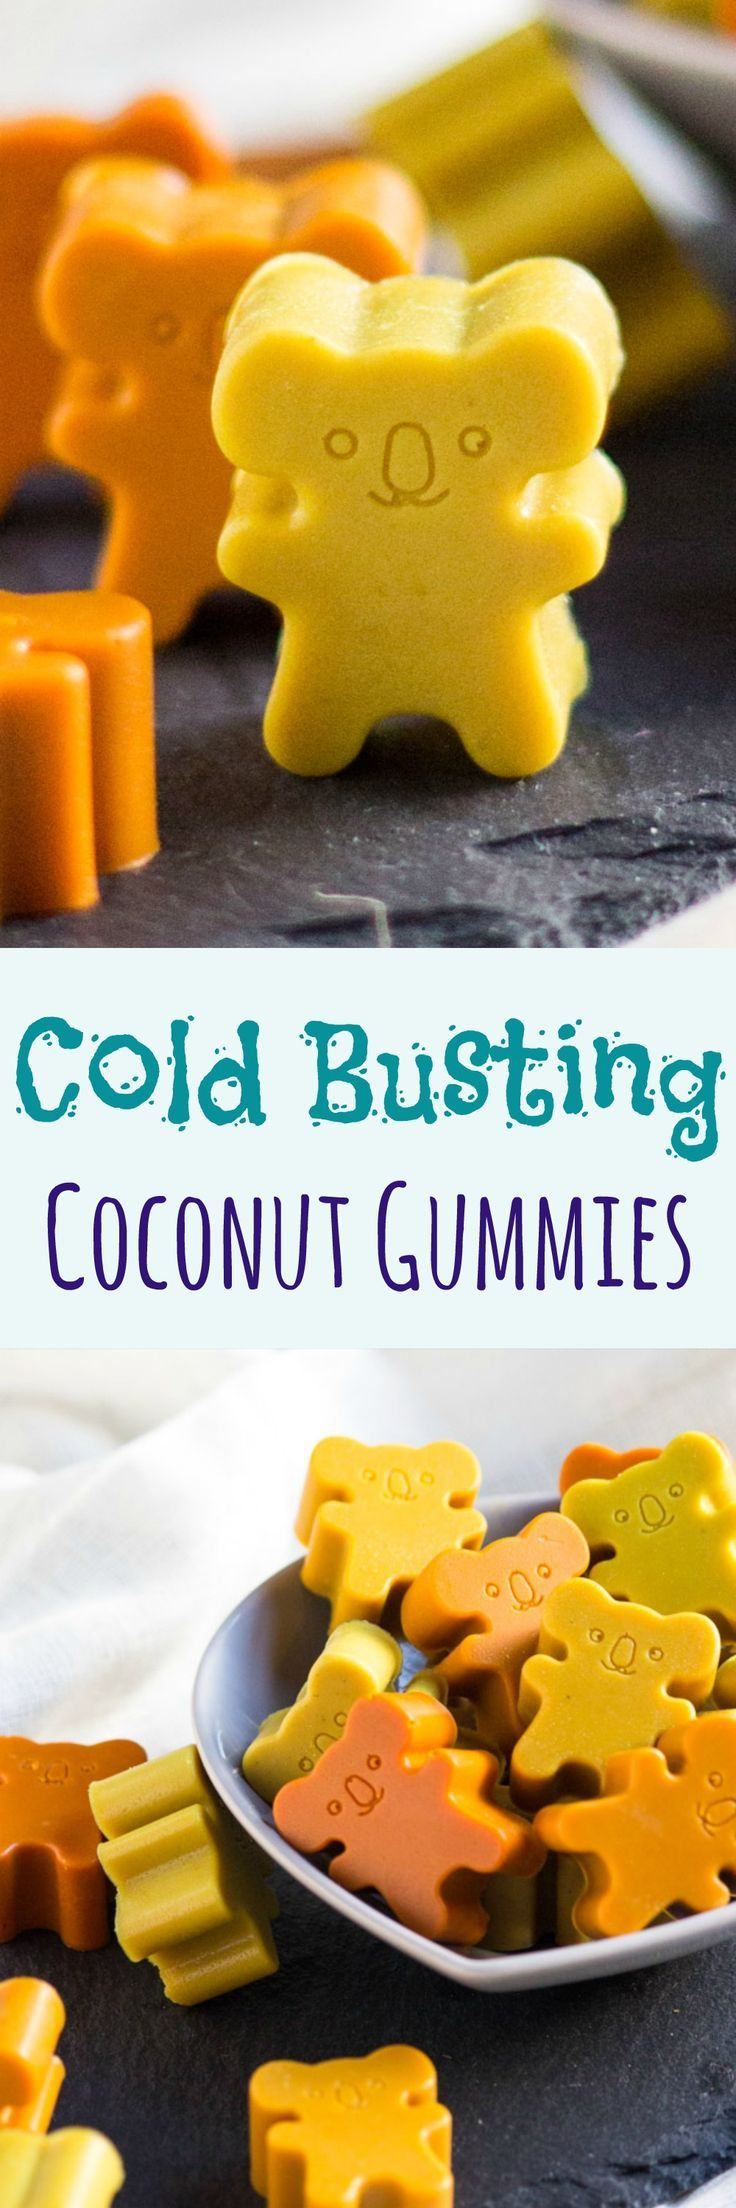 Cold Busting Coconut Turmeric Gummies Recipe Ginger